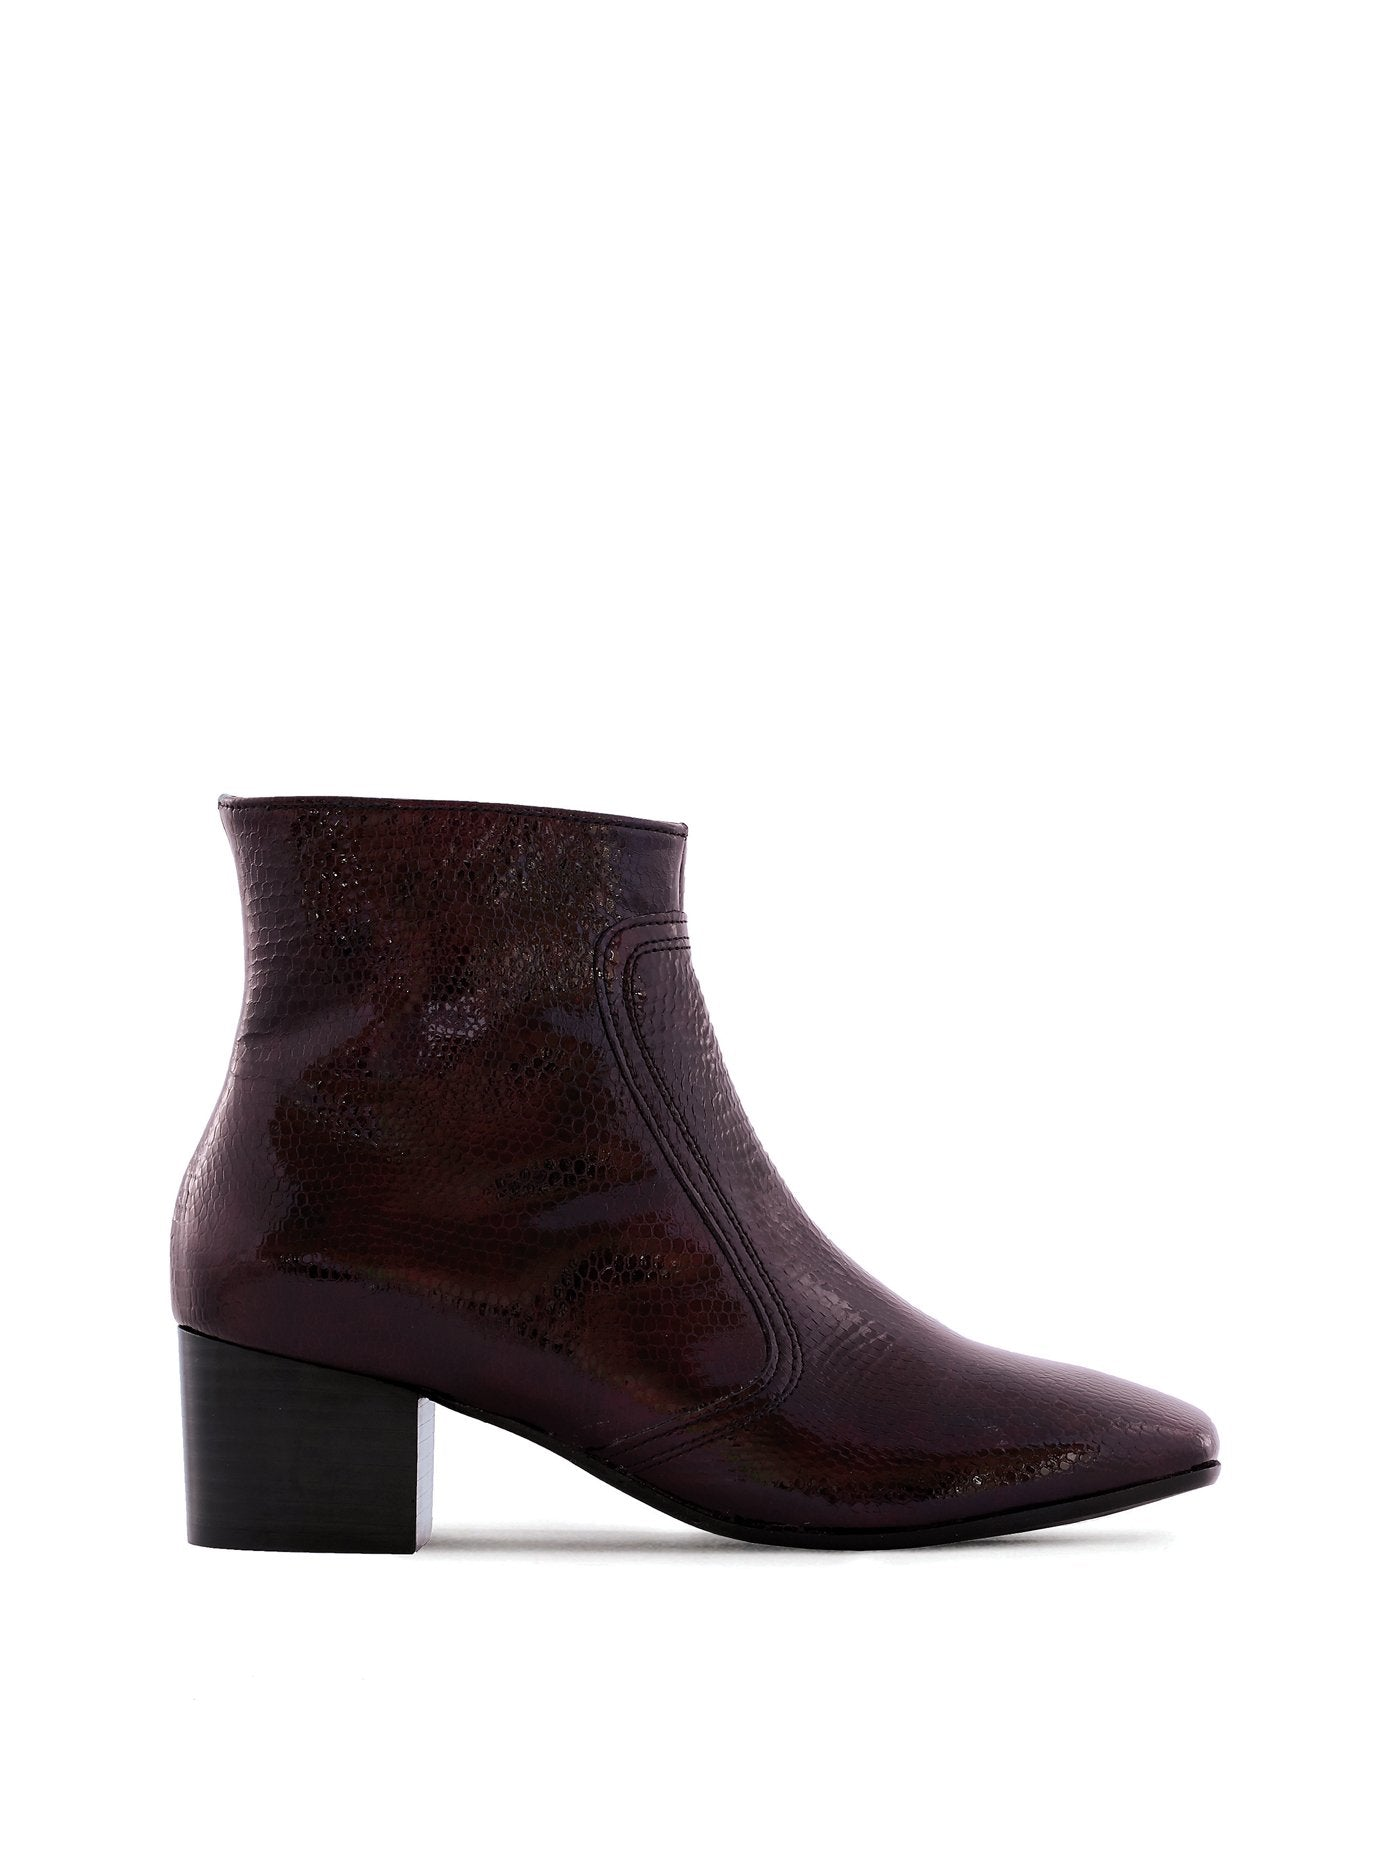 Shimmer - Burgundy Lizard Patent Leather